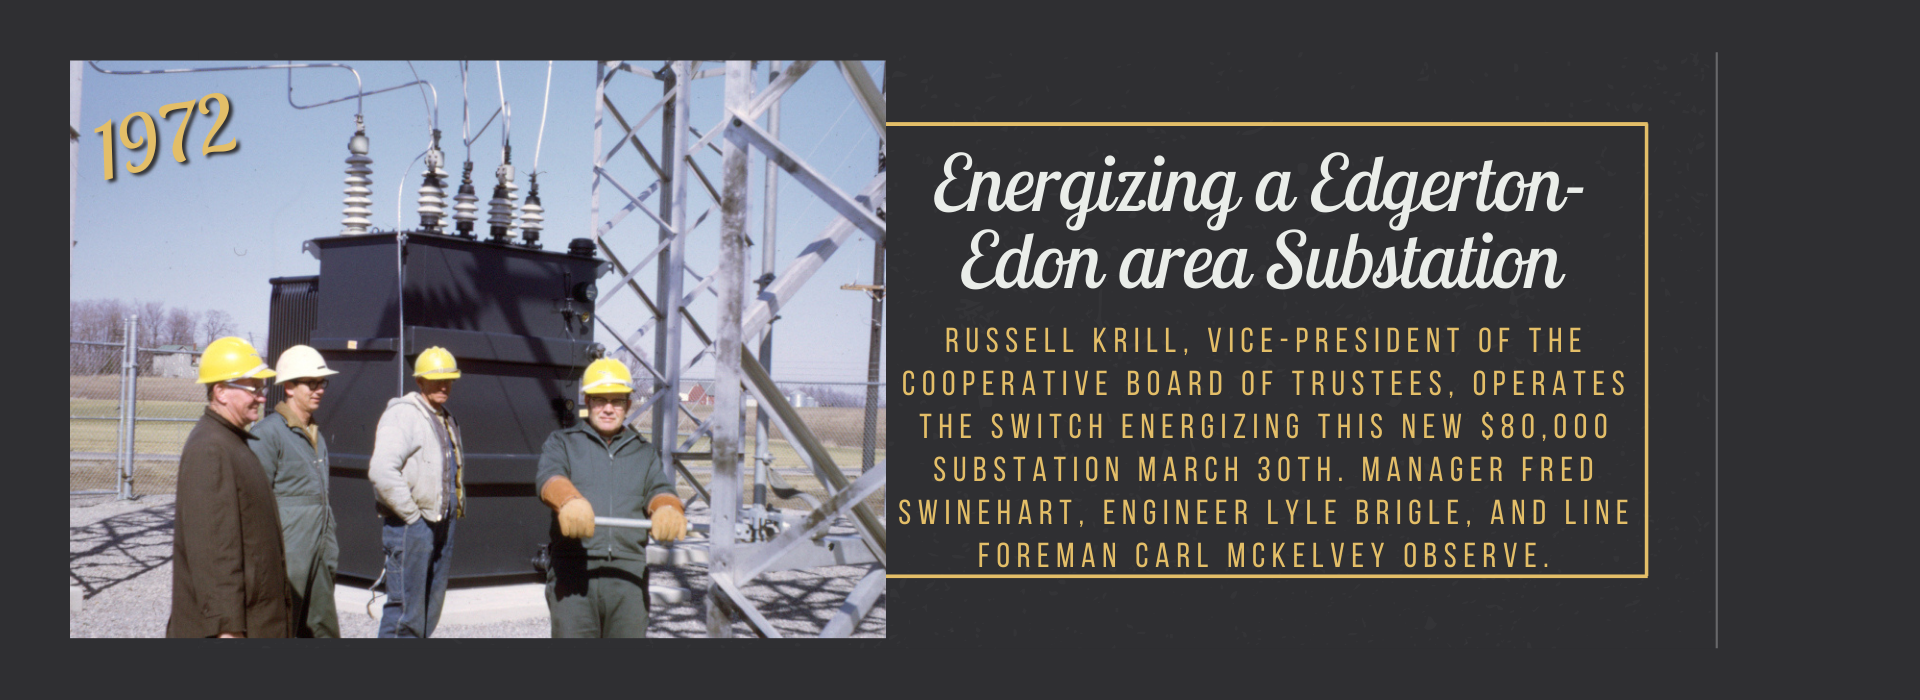 Energizing a Edgerton-Edon area Substation